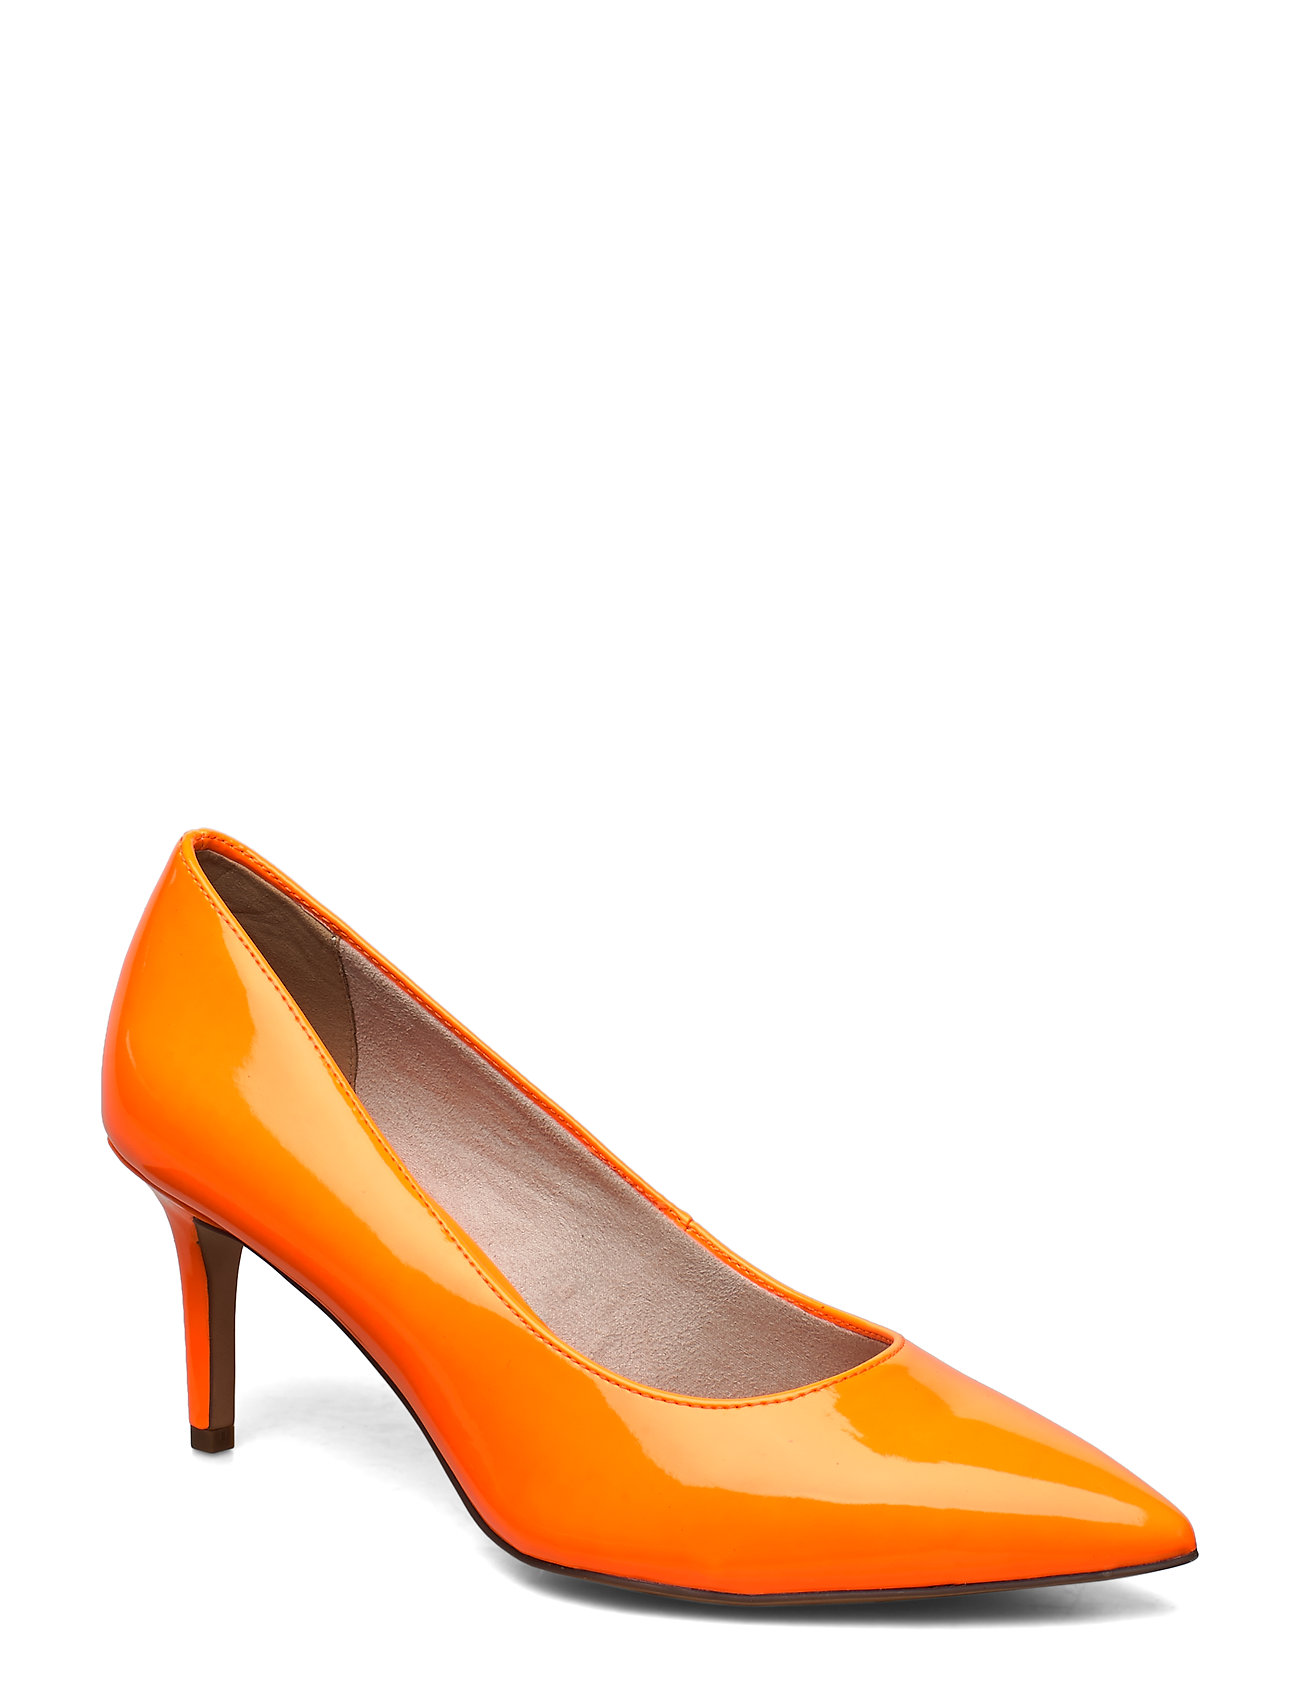 Tamaris Woms Court Shoe - ORANGE NEON